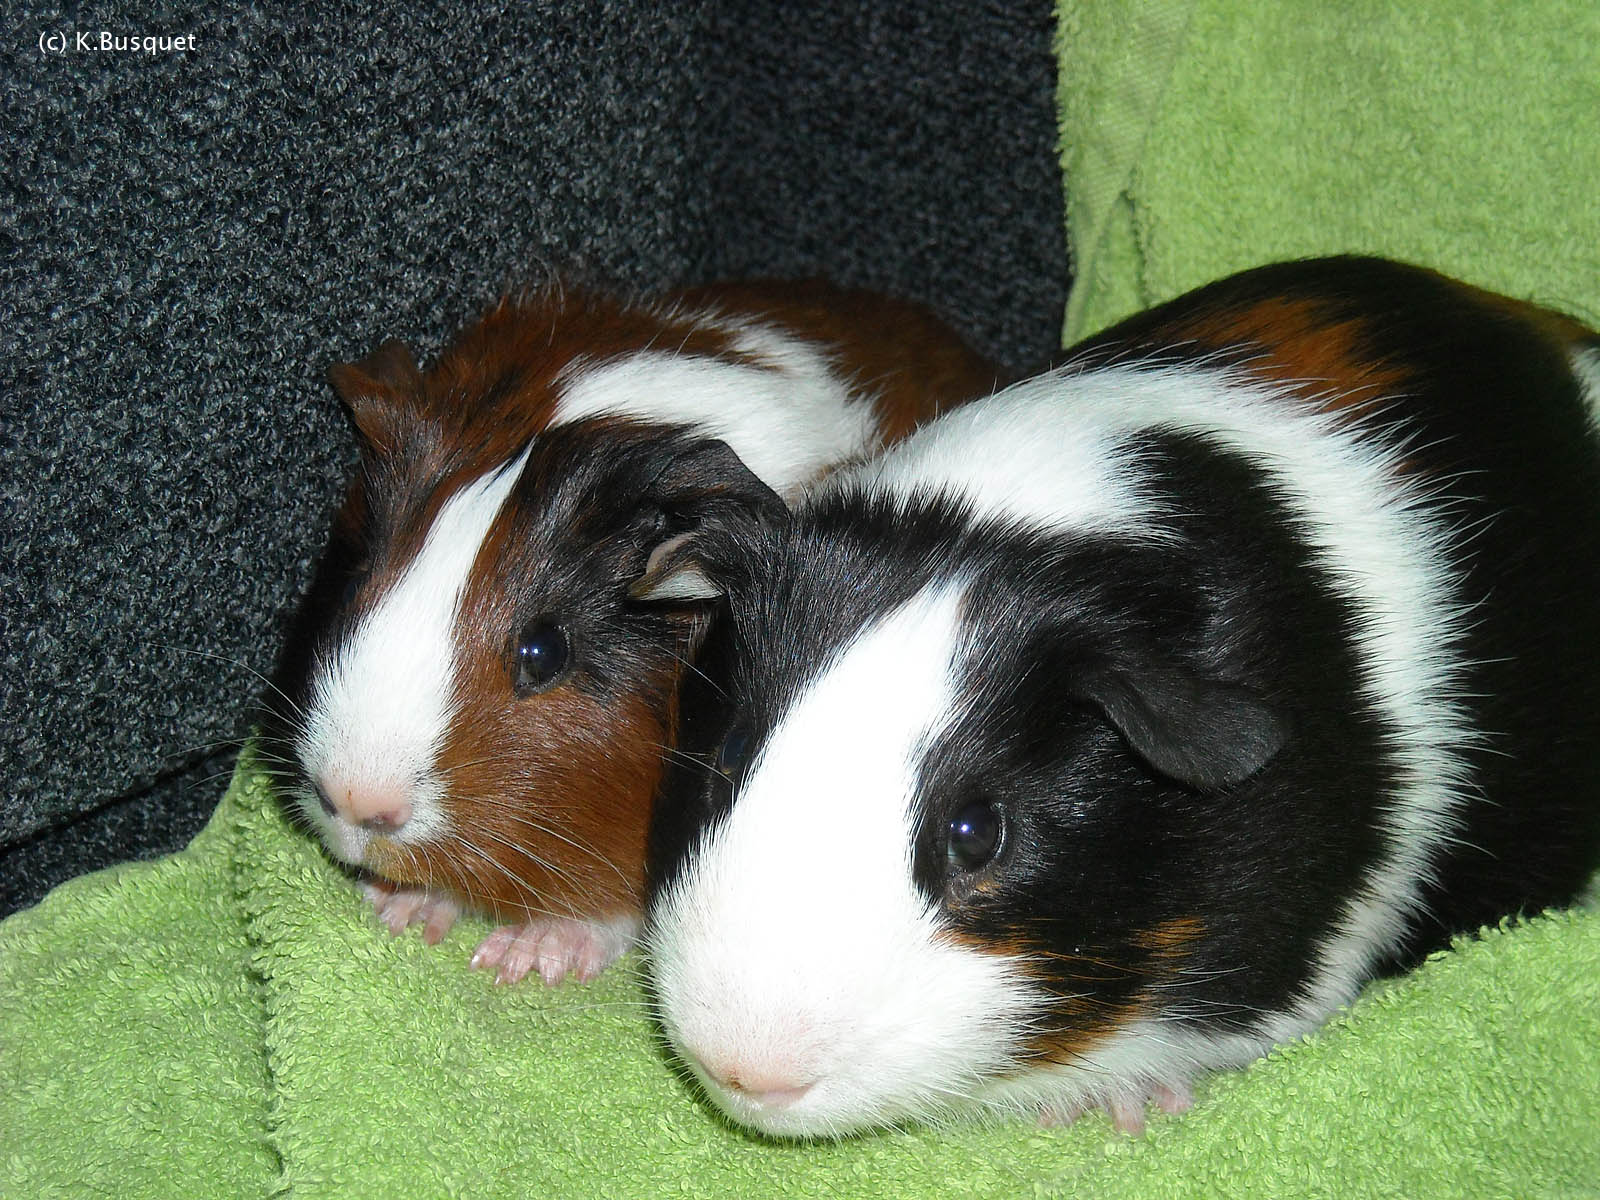 Very Sweet and Cute Animals: Funny Guinea Pig wallpaper for widescreen